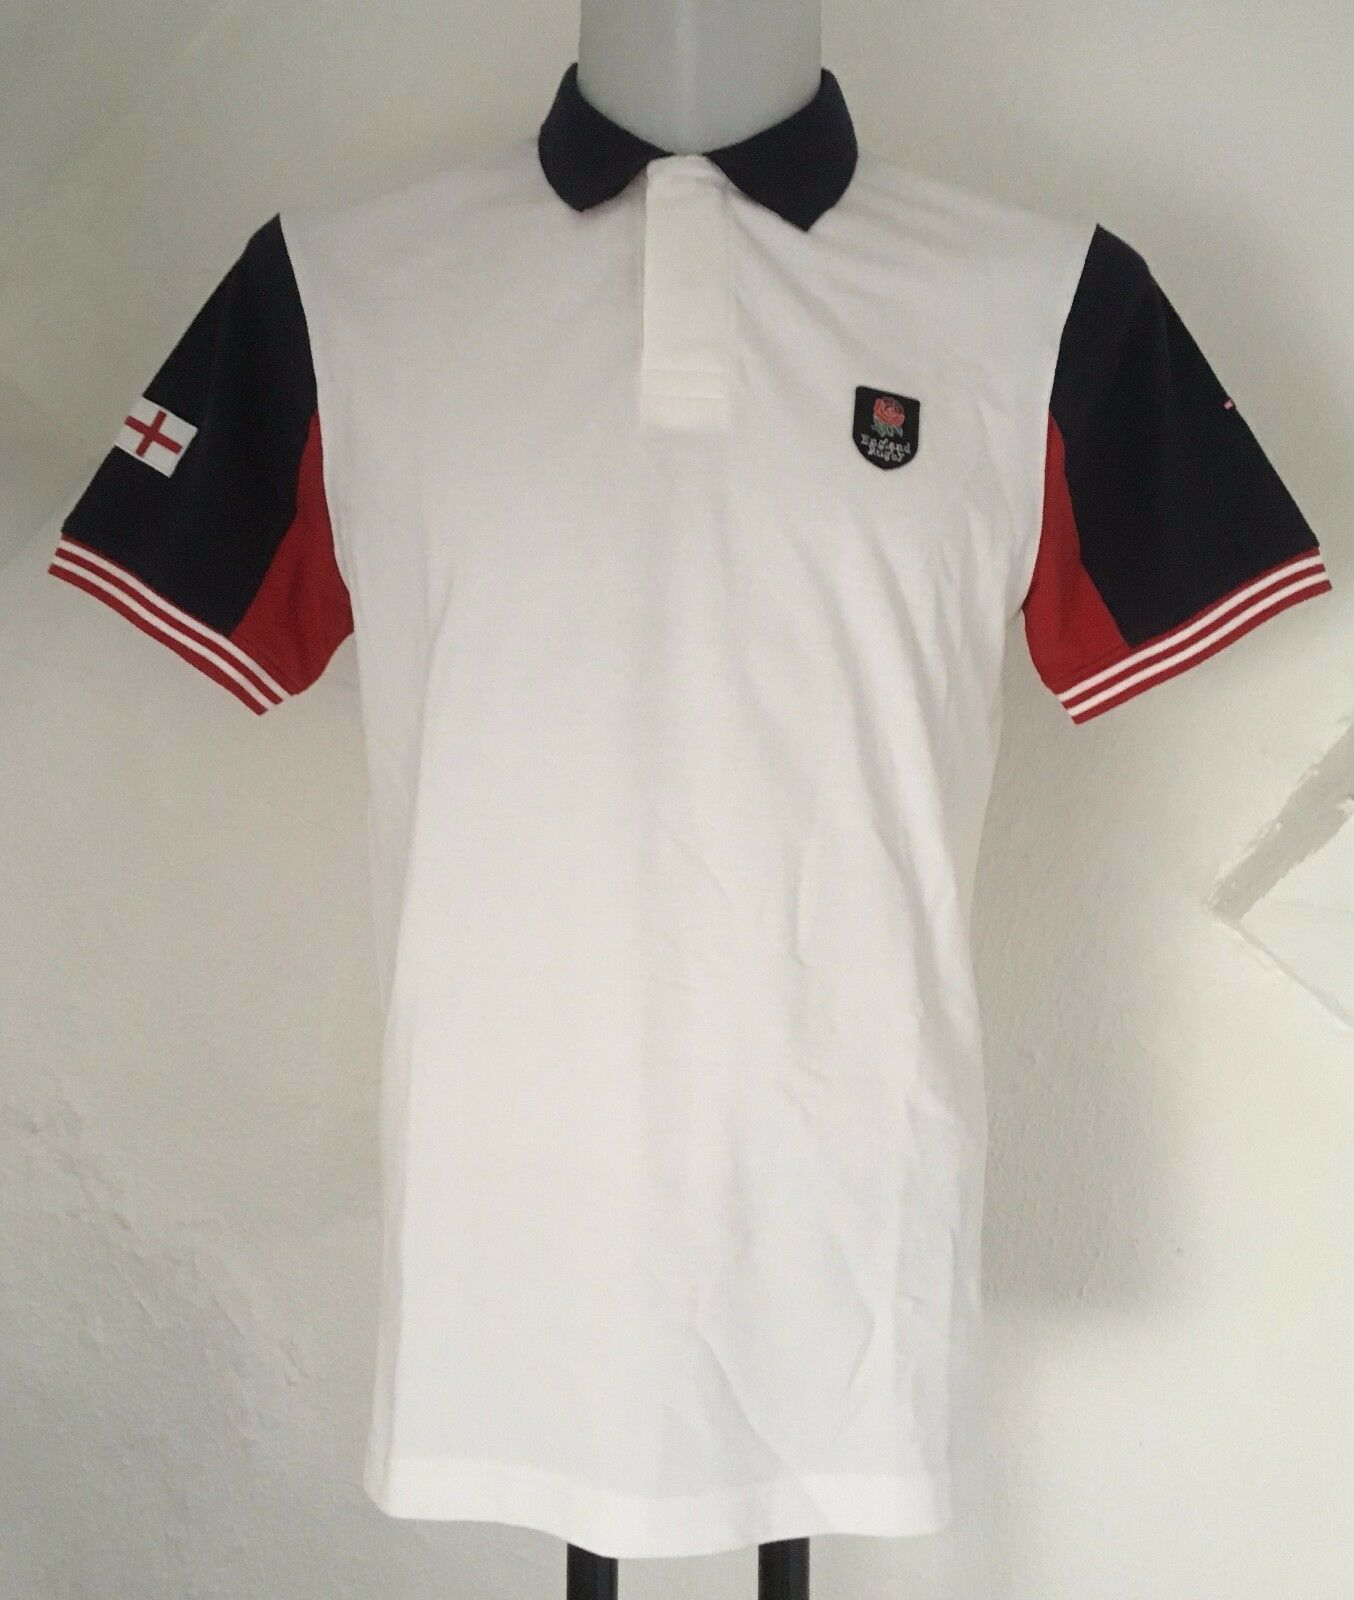 England RUGBY BIANCA S S POLO SHIRT by Eden Park Taglia Uomo Media Nuovo di Zecca